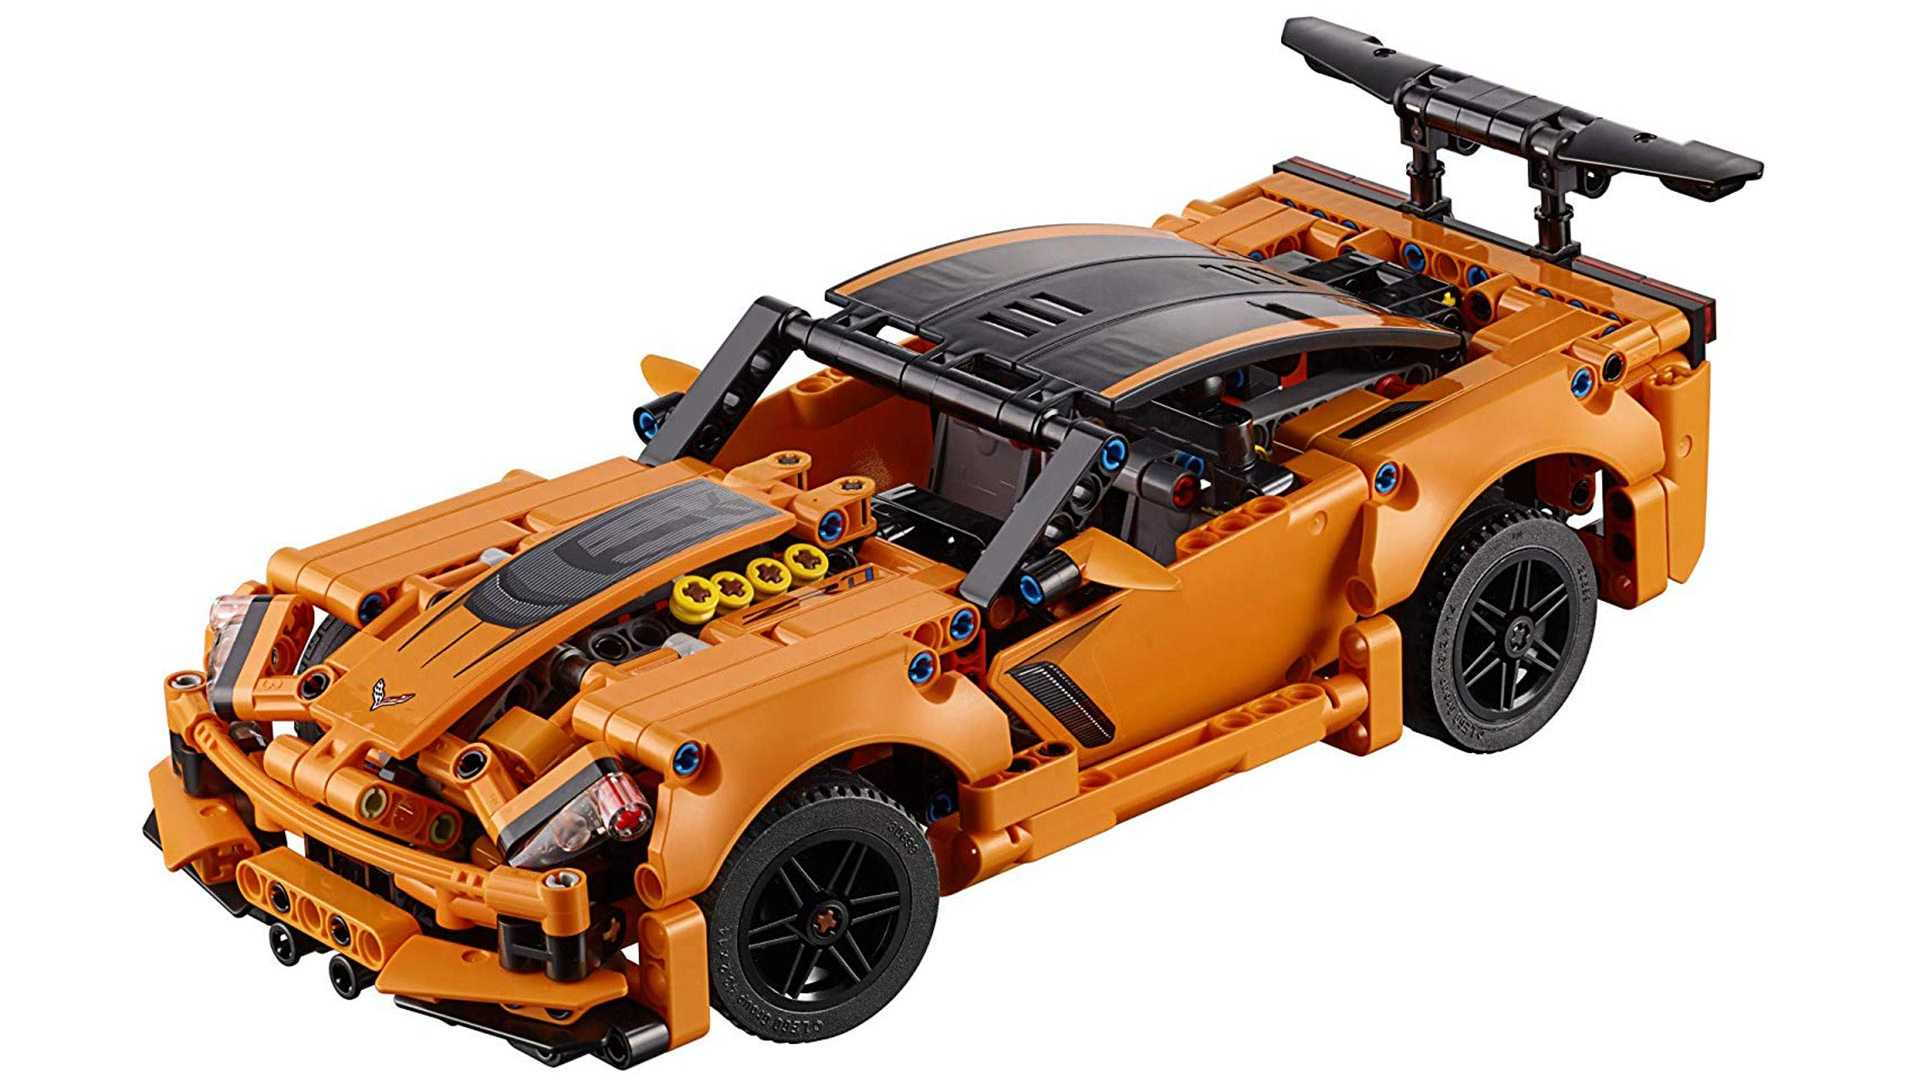 Chevrolet Corvette ZR1 Lego Technic kit